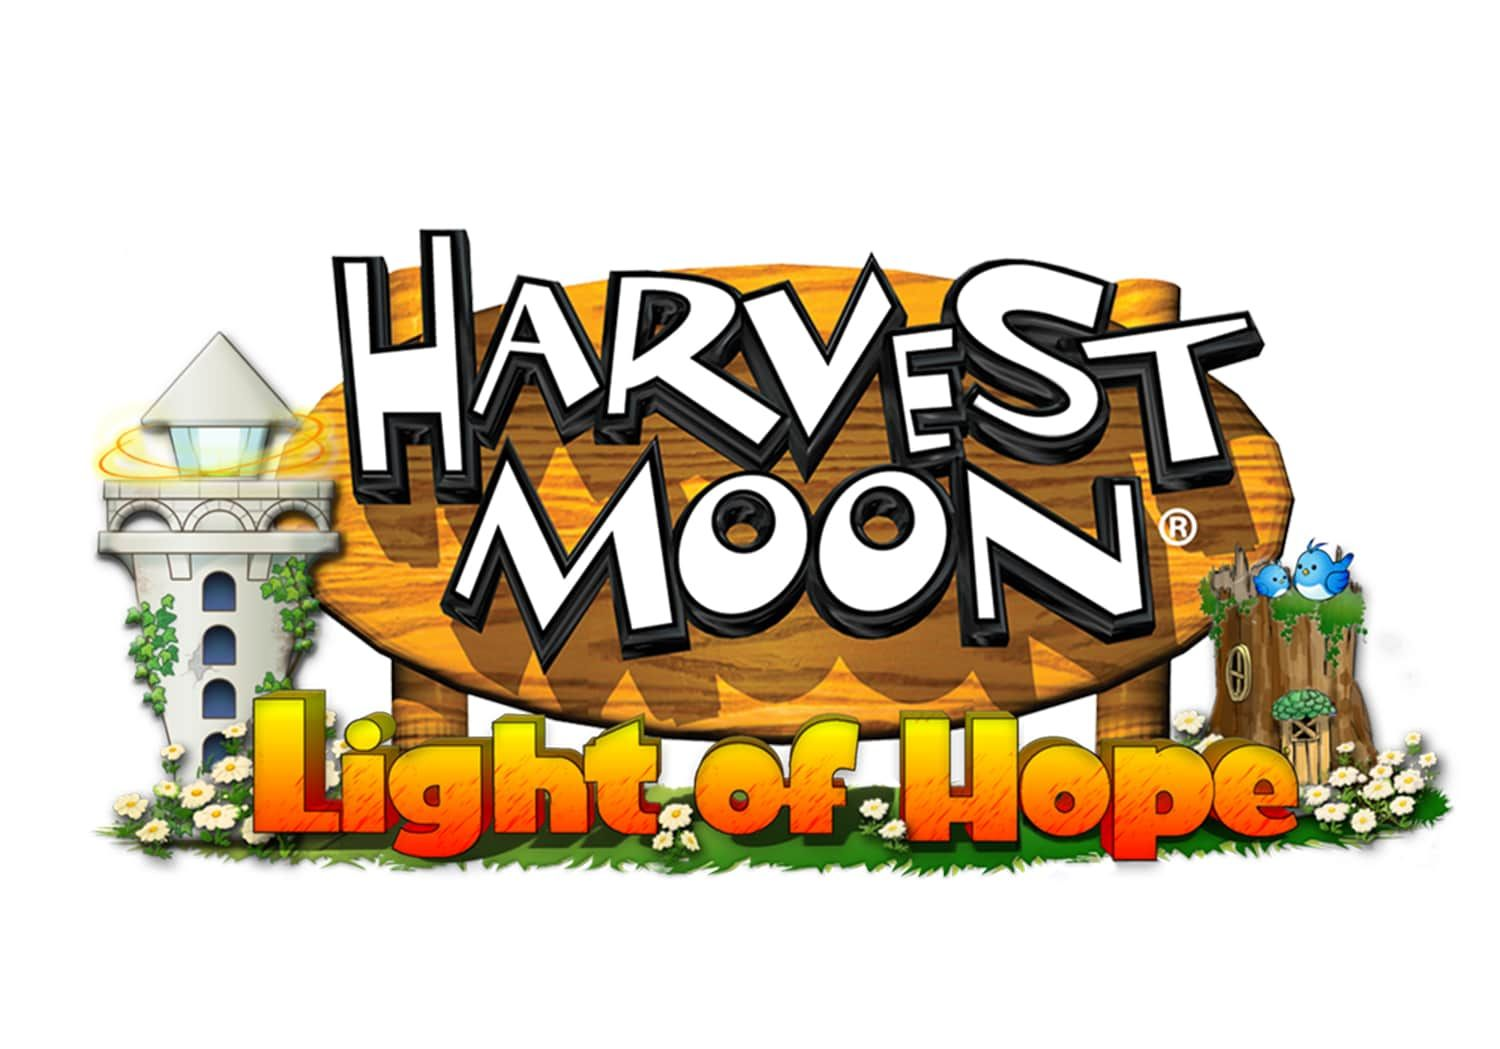 Harvest Moon Is Going Cross Platform With Harvest Moon Light Of Hope For Steam Ps4 And Switch Harvest Moon Harvest Moon Game Harvest